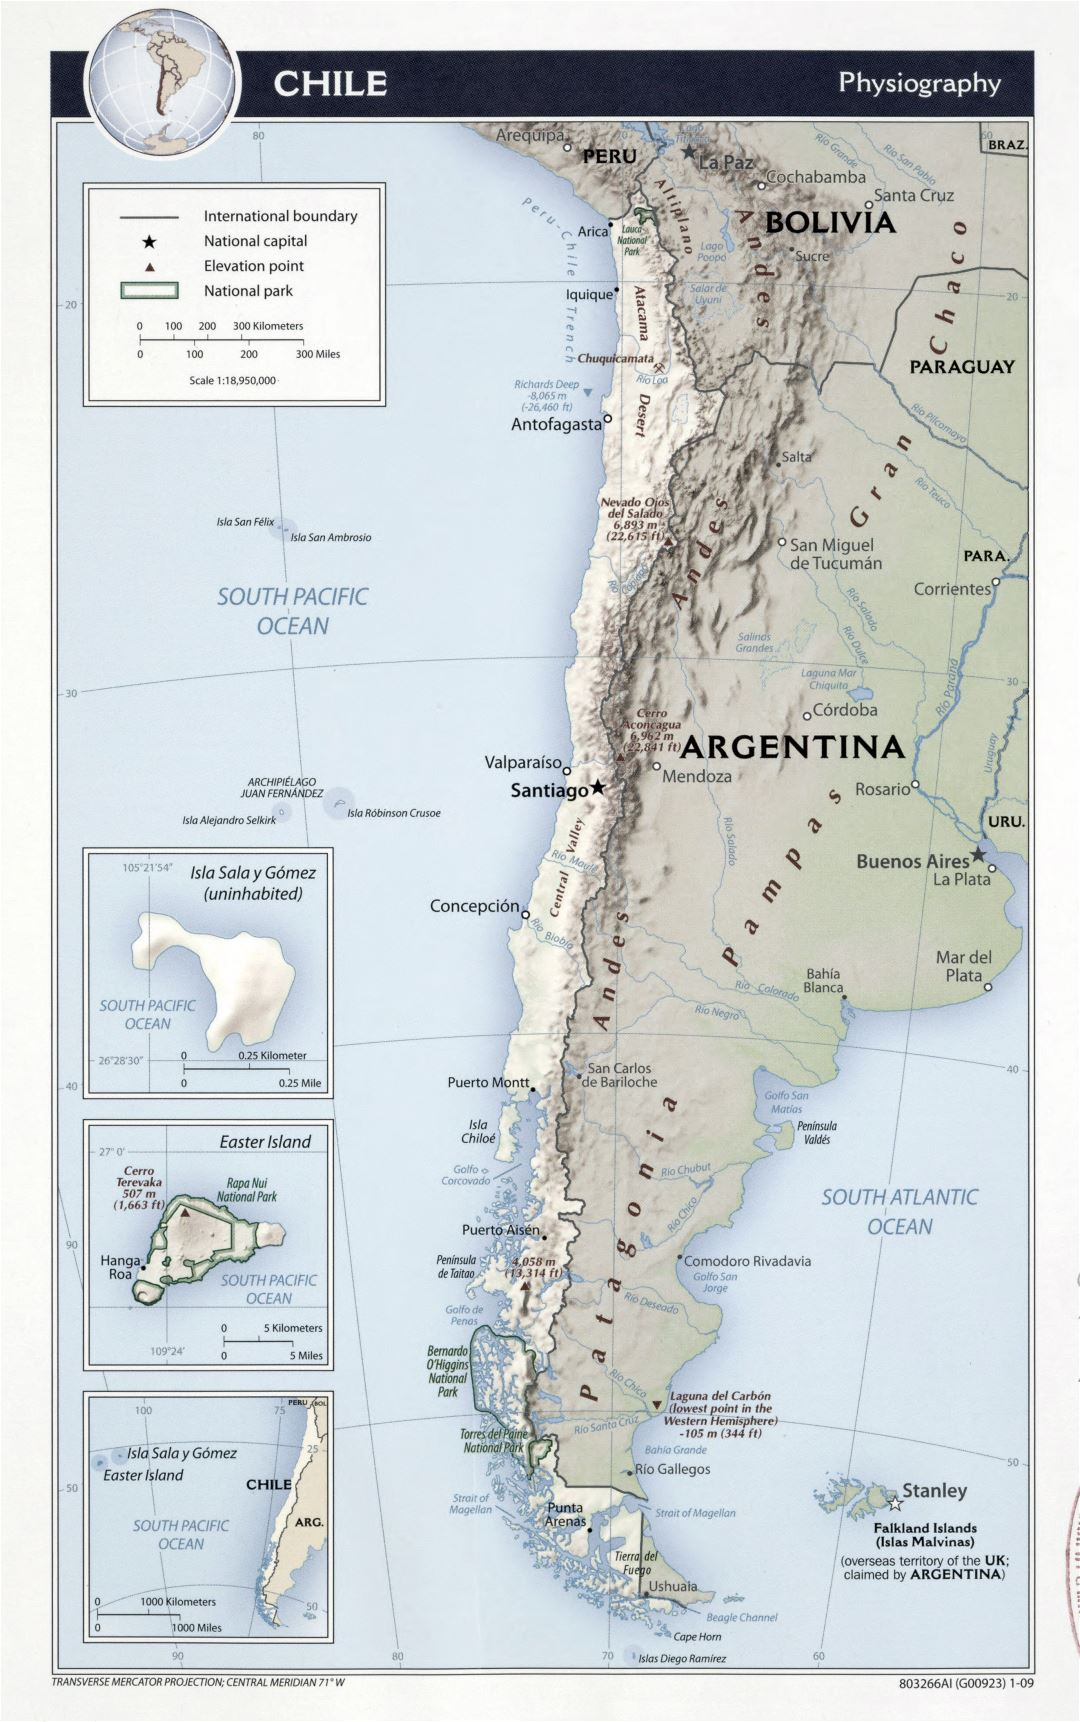 Large detailed physiography map of Chile with other marks - 2009